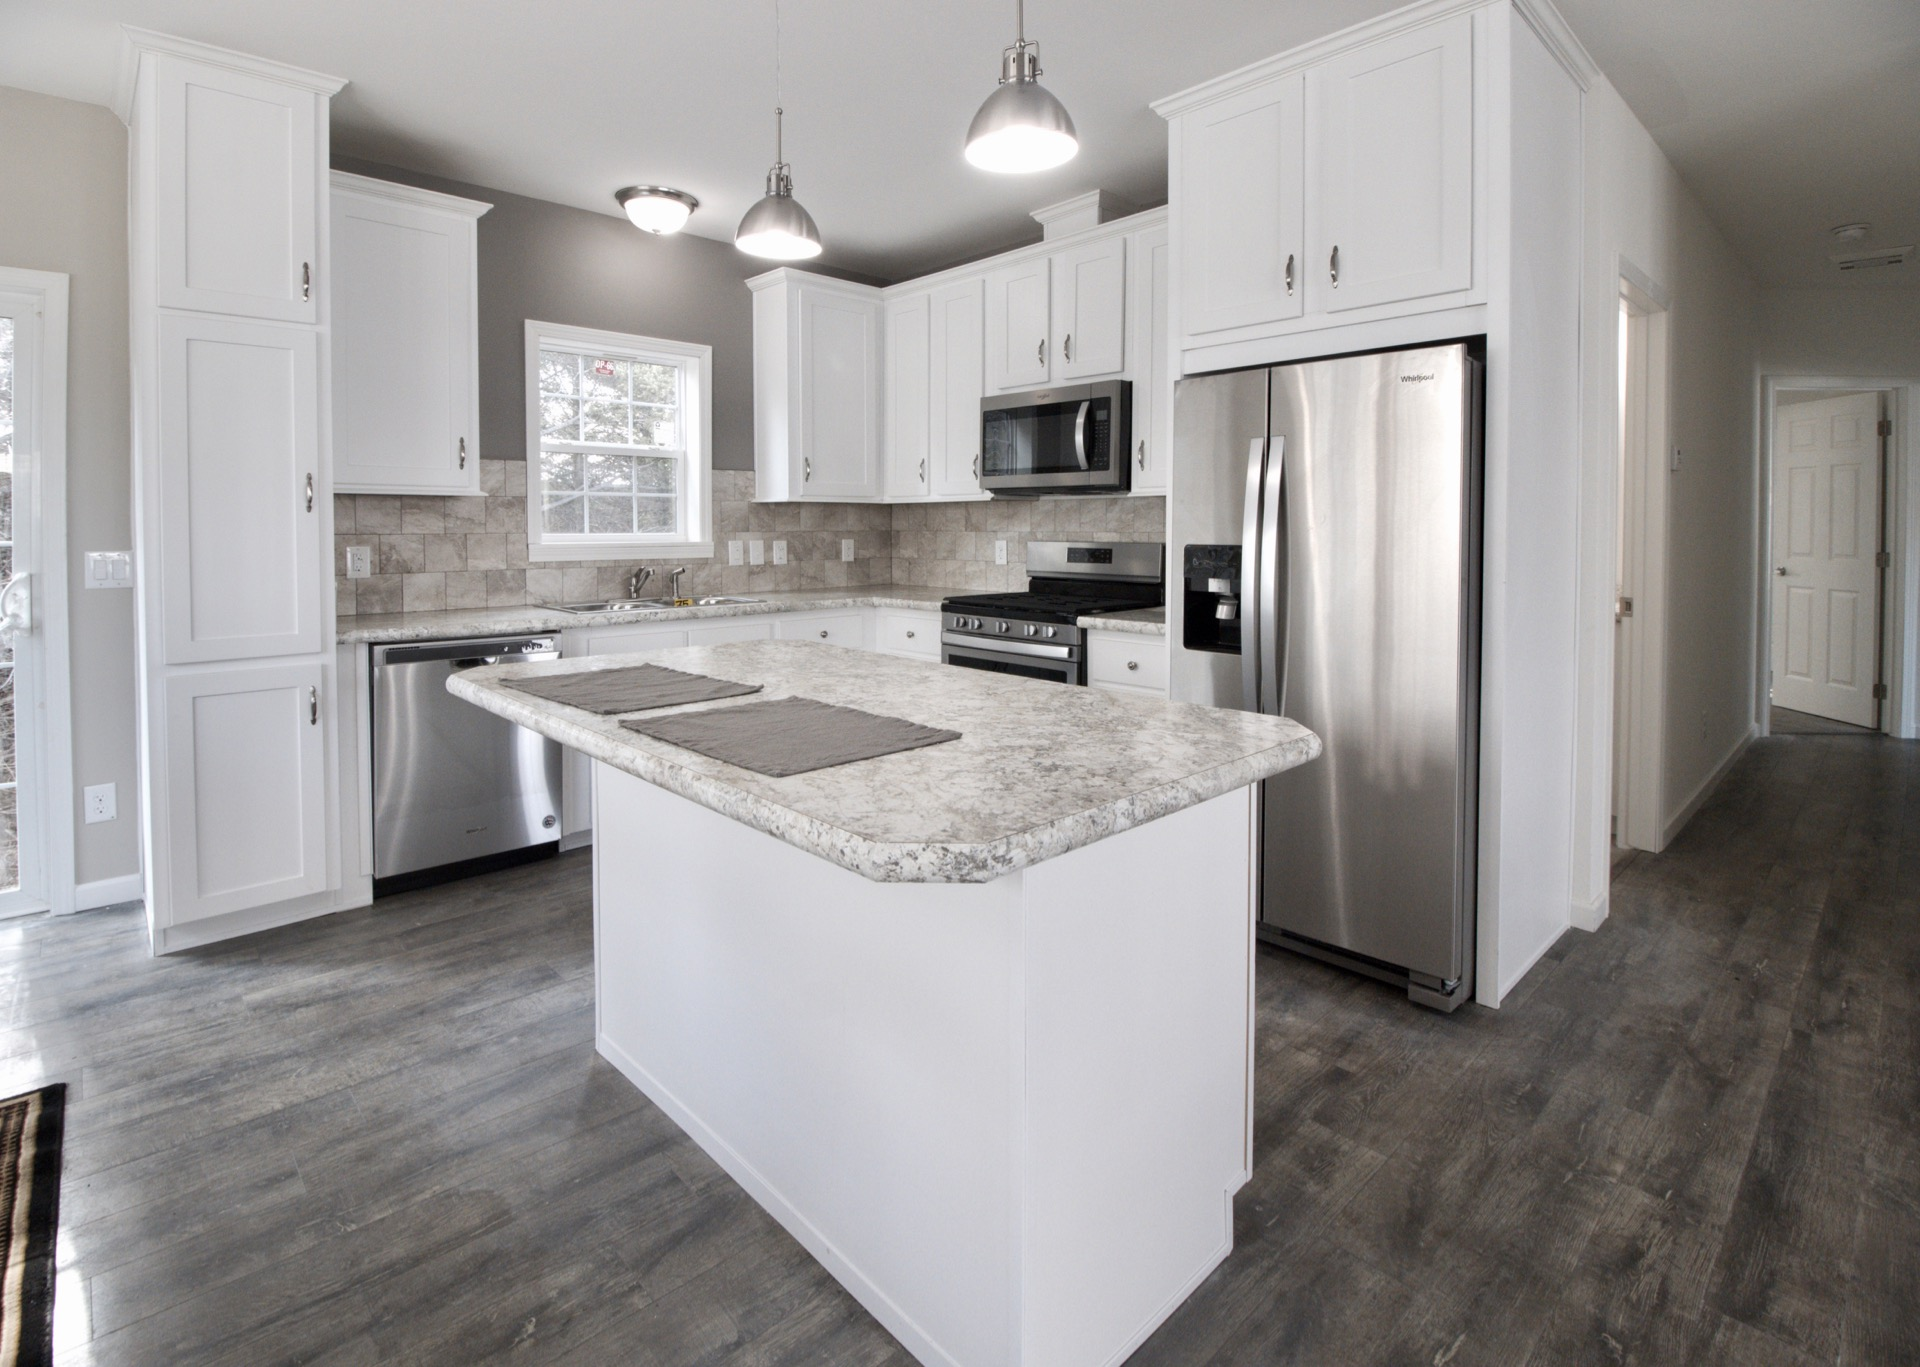 White Cabinets and Optional Island